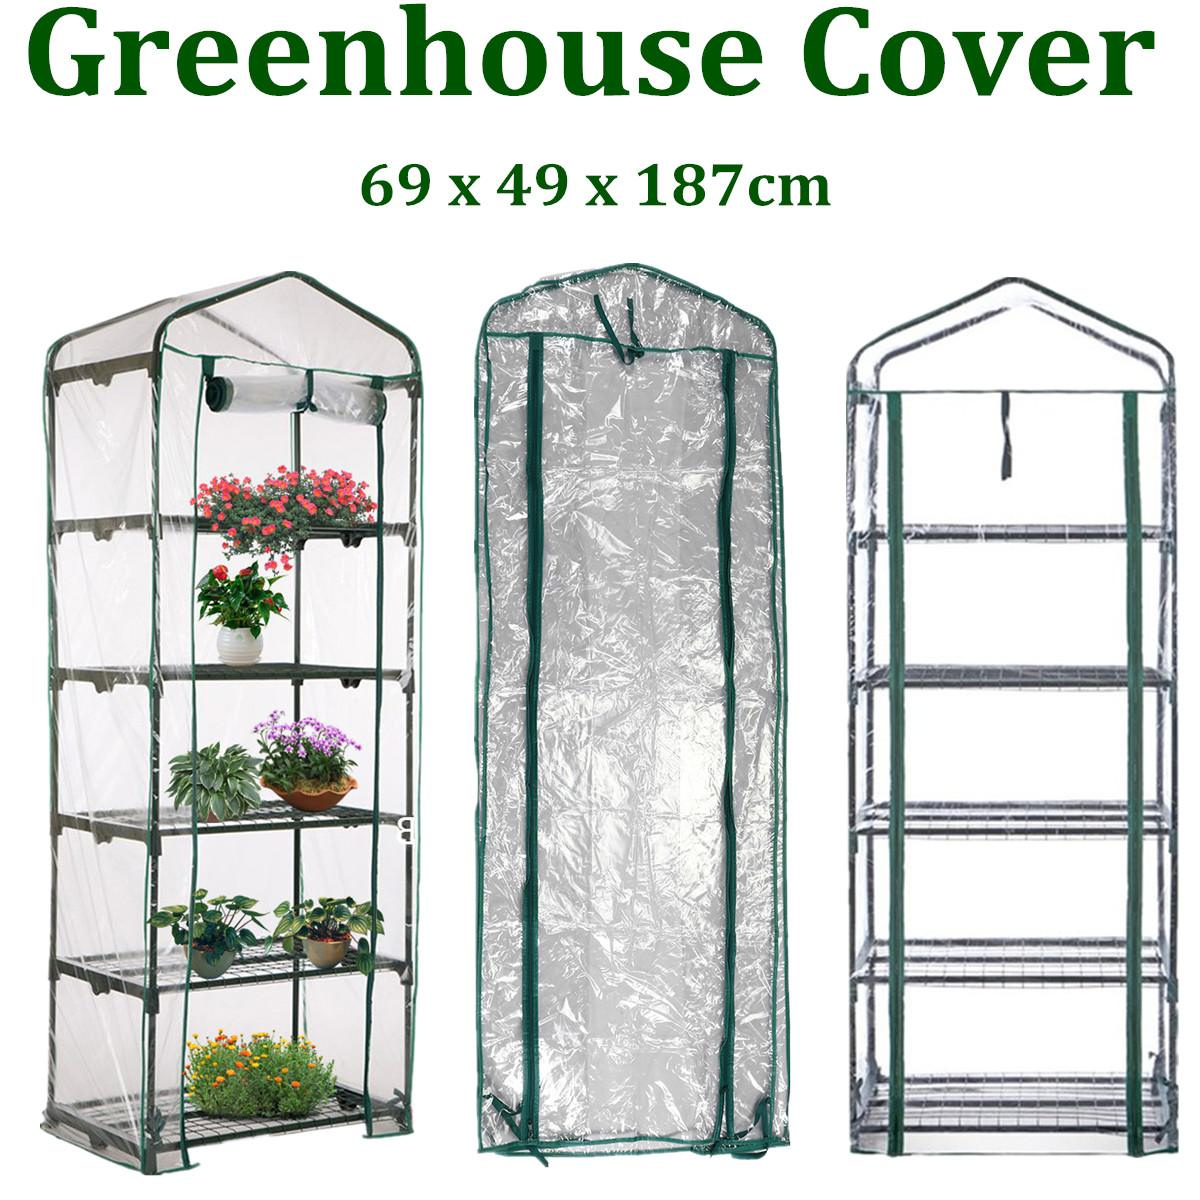 69 x 49 x 187cm Apex Roof 5 Tiers Garden Greenhouse Hot Plant House Shelf Shed Clear PVC Cover Keep Warm Good Breathability